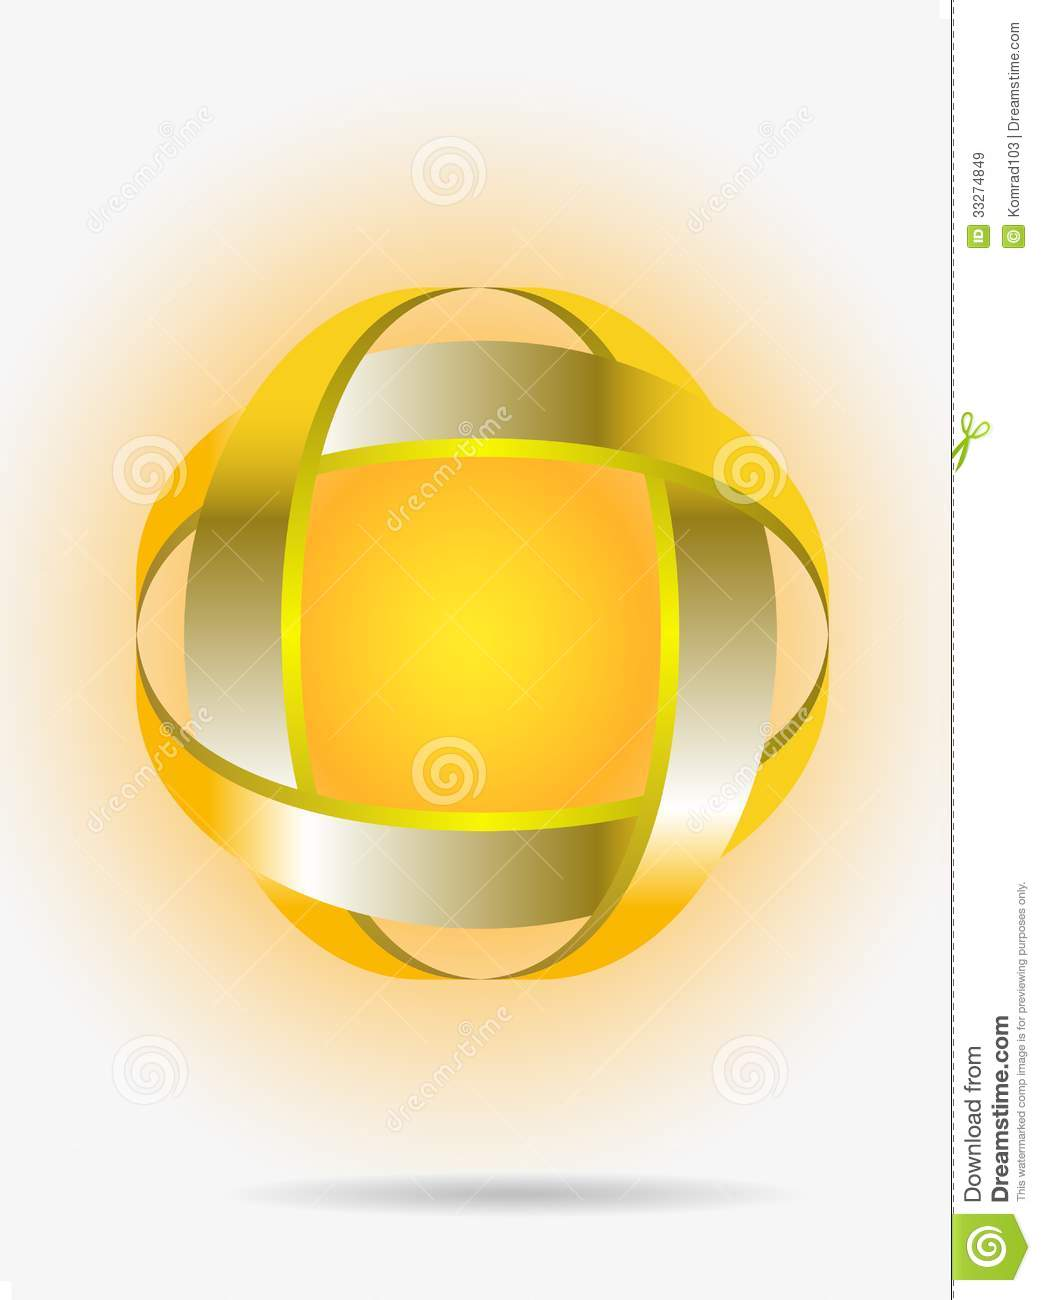 Gold abstract symbol royalty free stock images image 33274849